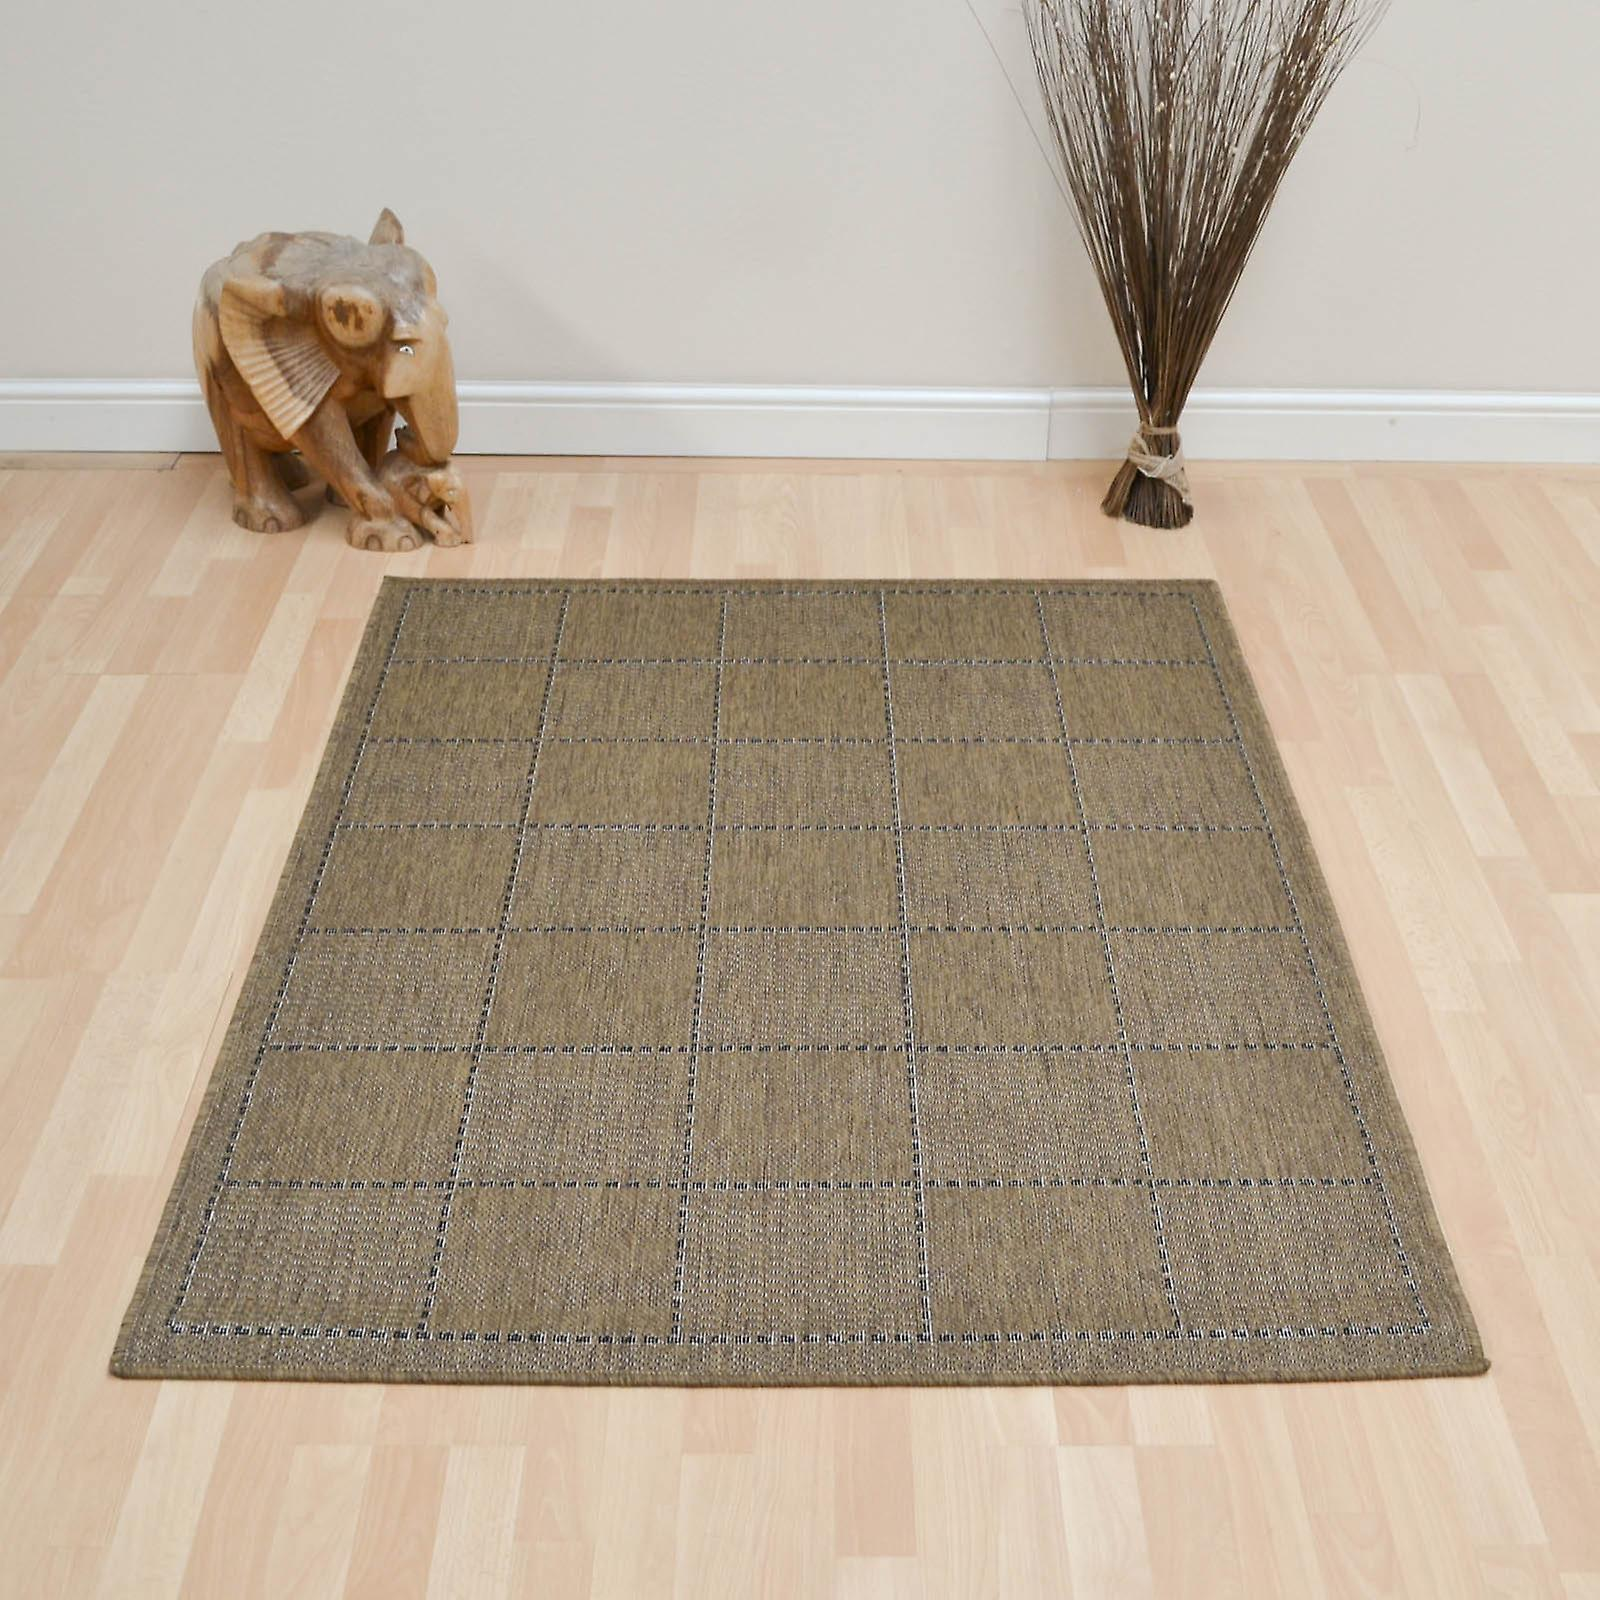 Super Sisalo Anti Slip Tapis de cuisine En Brown